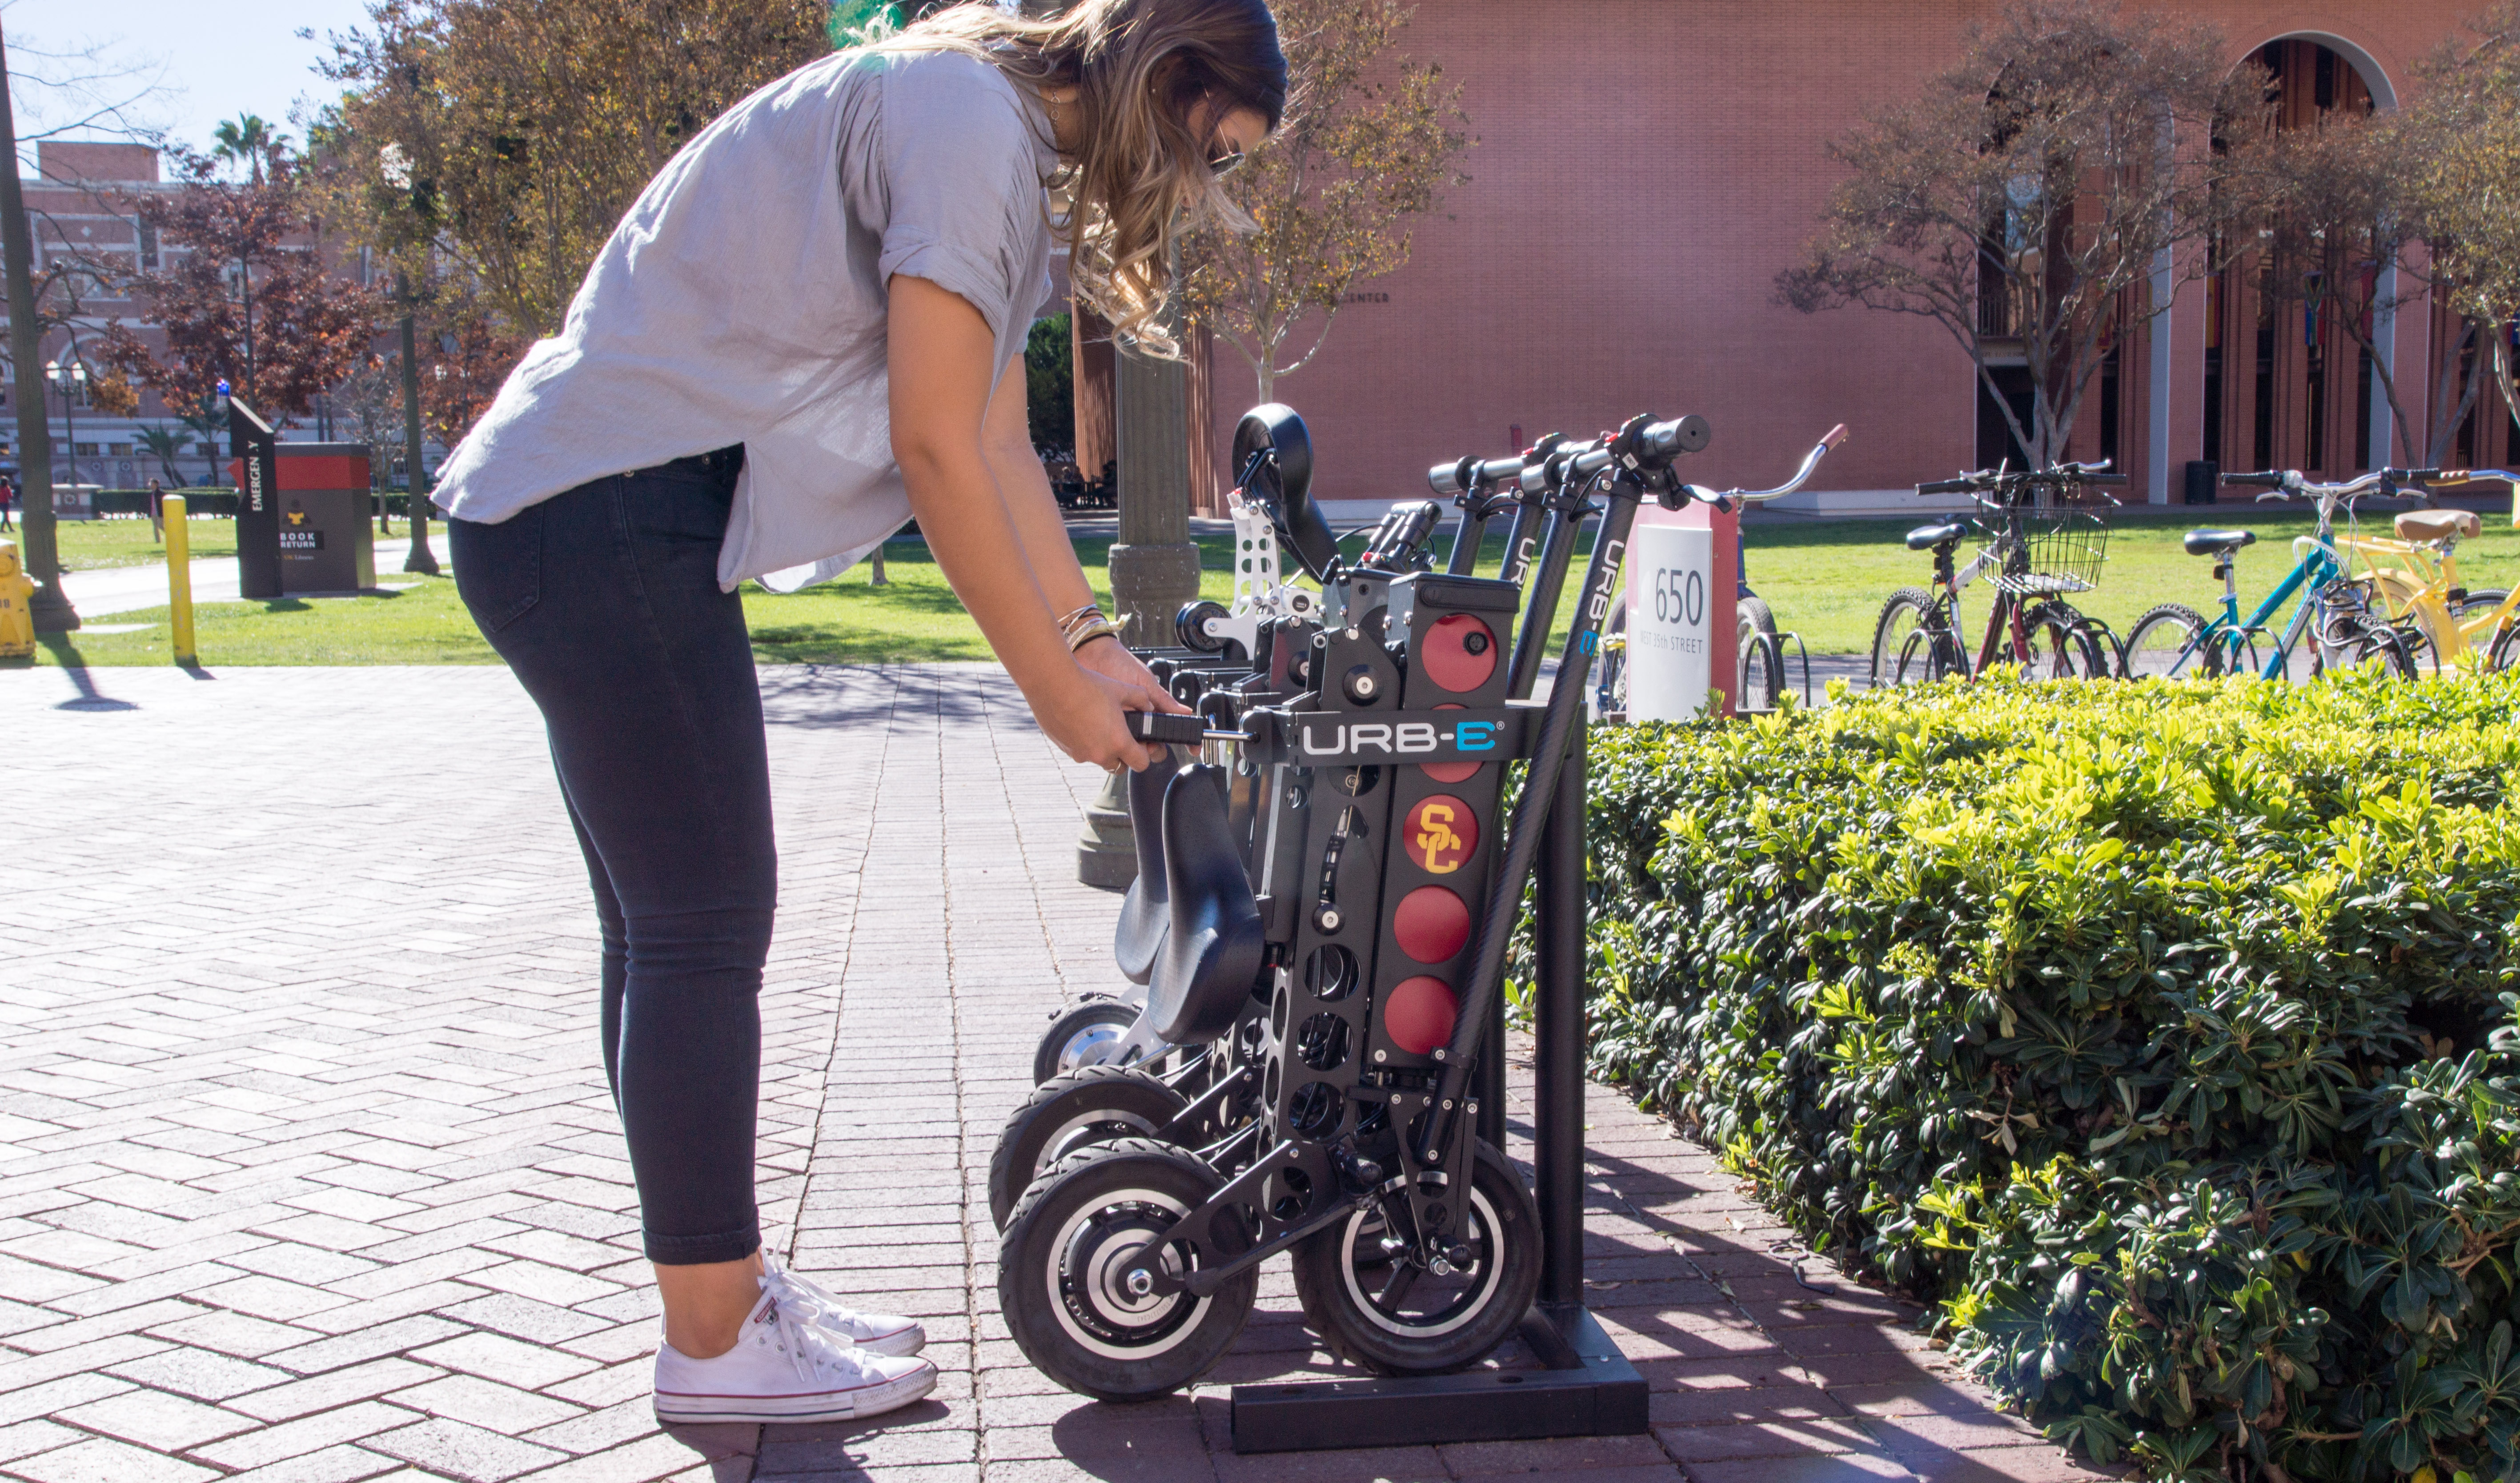 URB-E's launching a scooter sharing network at college campuses and hotels